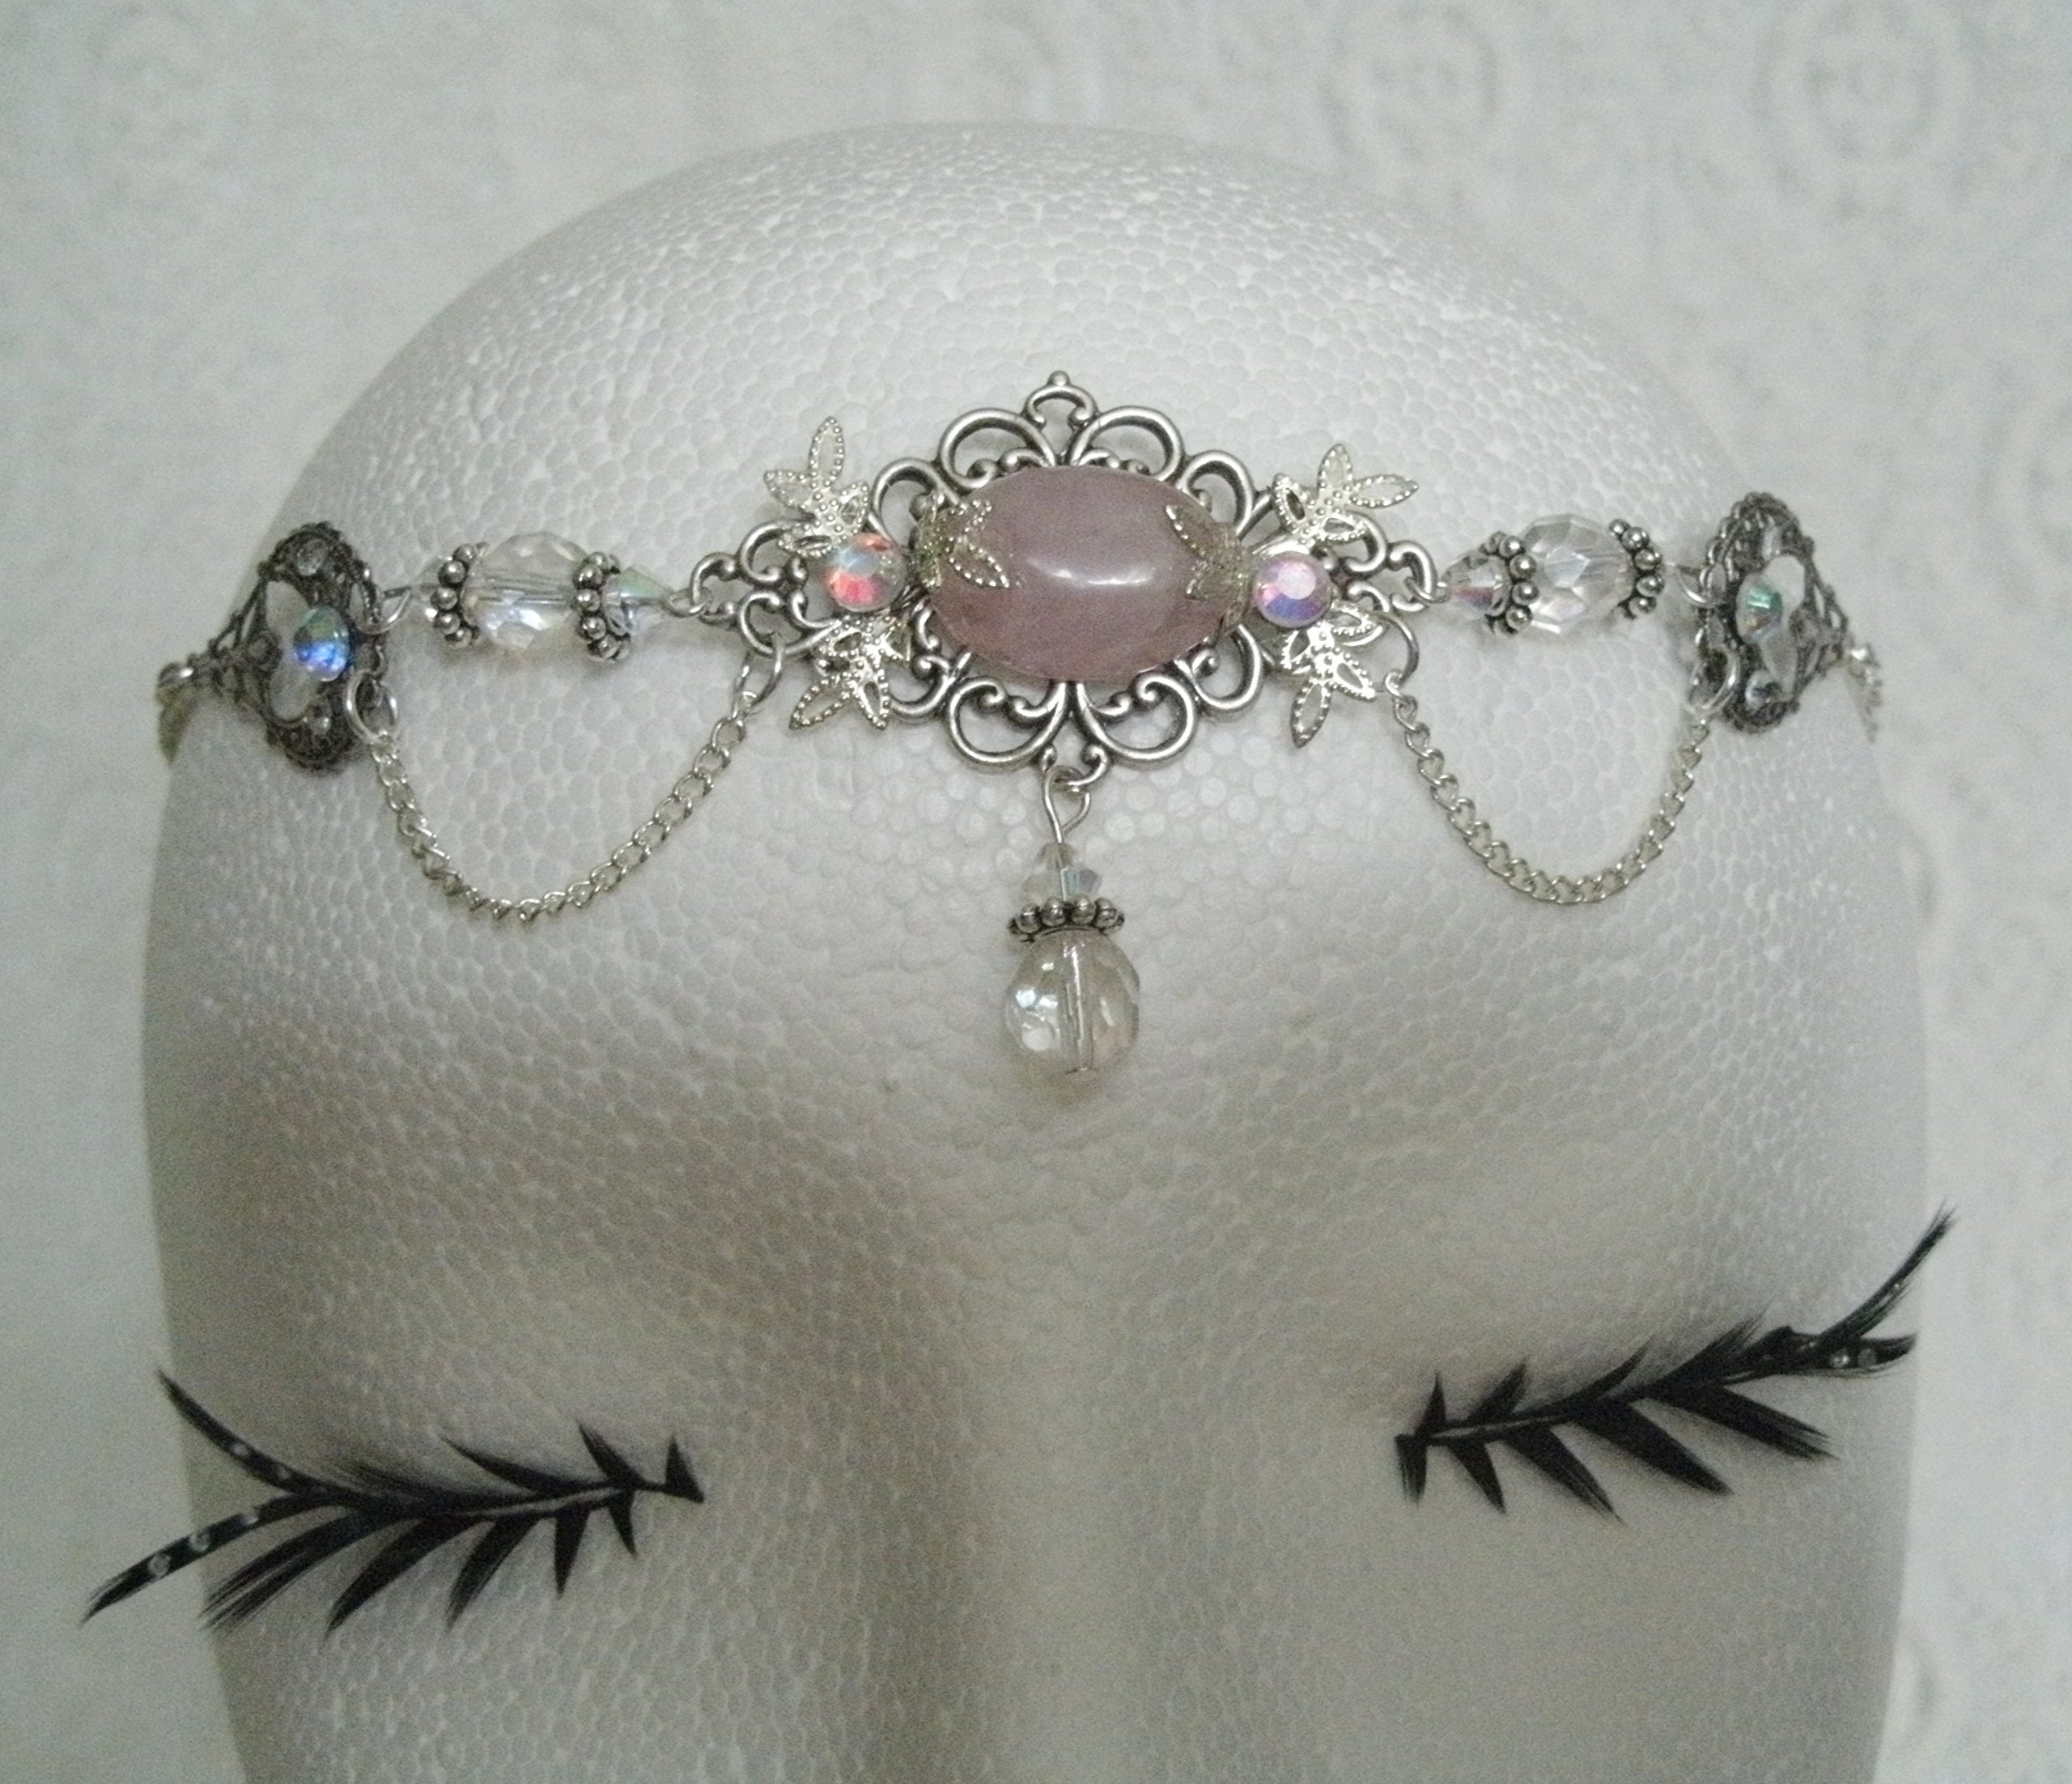 Rose Quartz Circlet, handmade jewelry wiccan pagan goddess wicca witch witchcraft headpiece renaissance medieval victorian